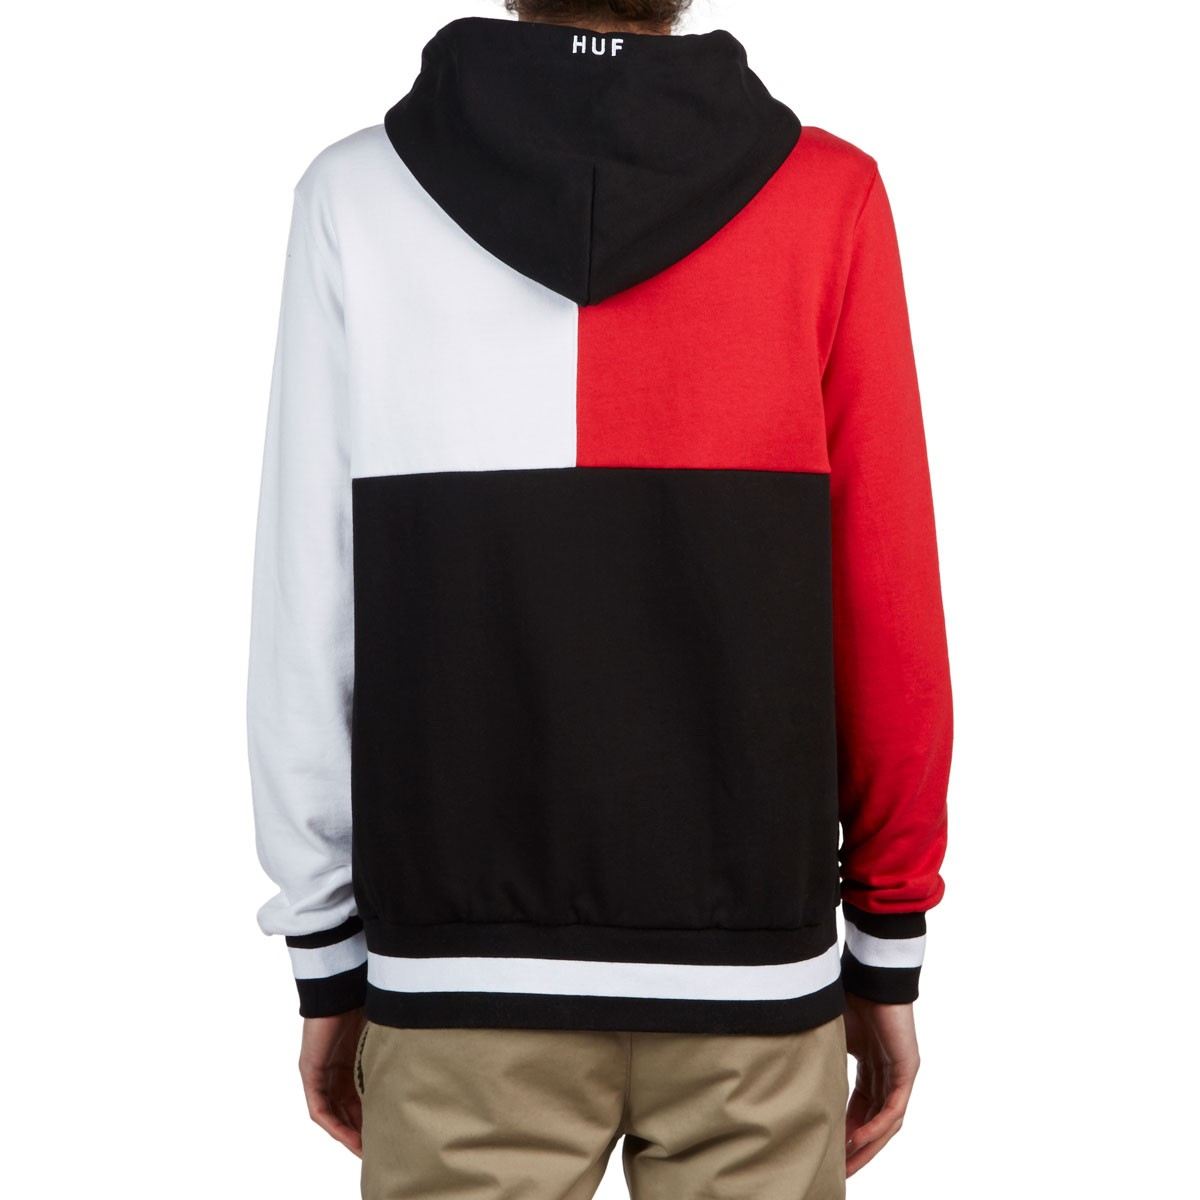 39cefc4ae59 Huf Velli Pullover Hoodie - Red White Black